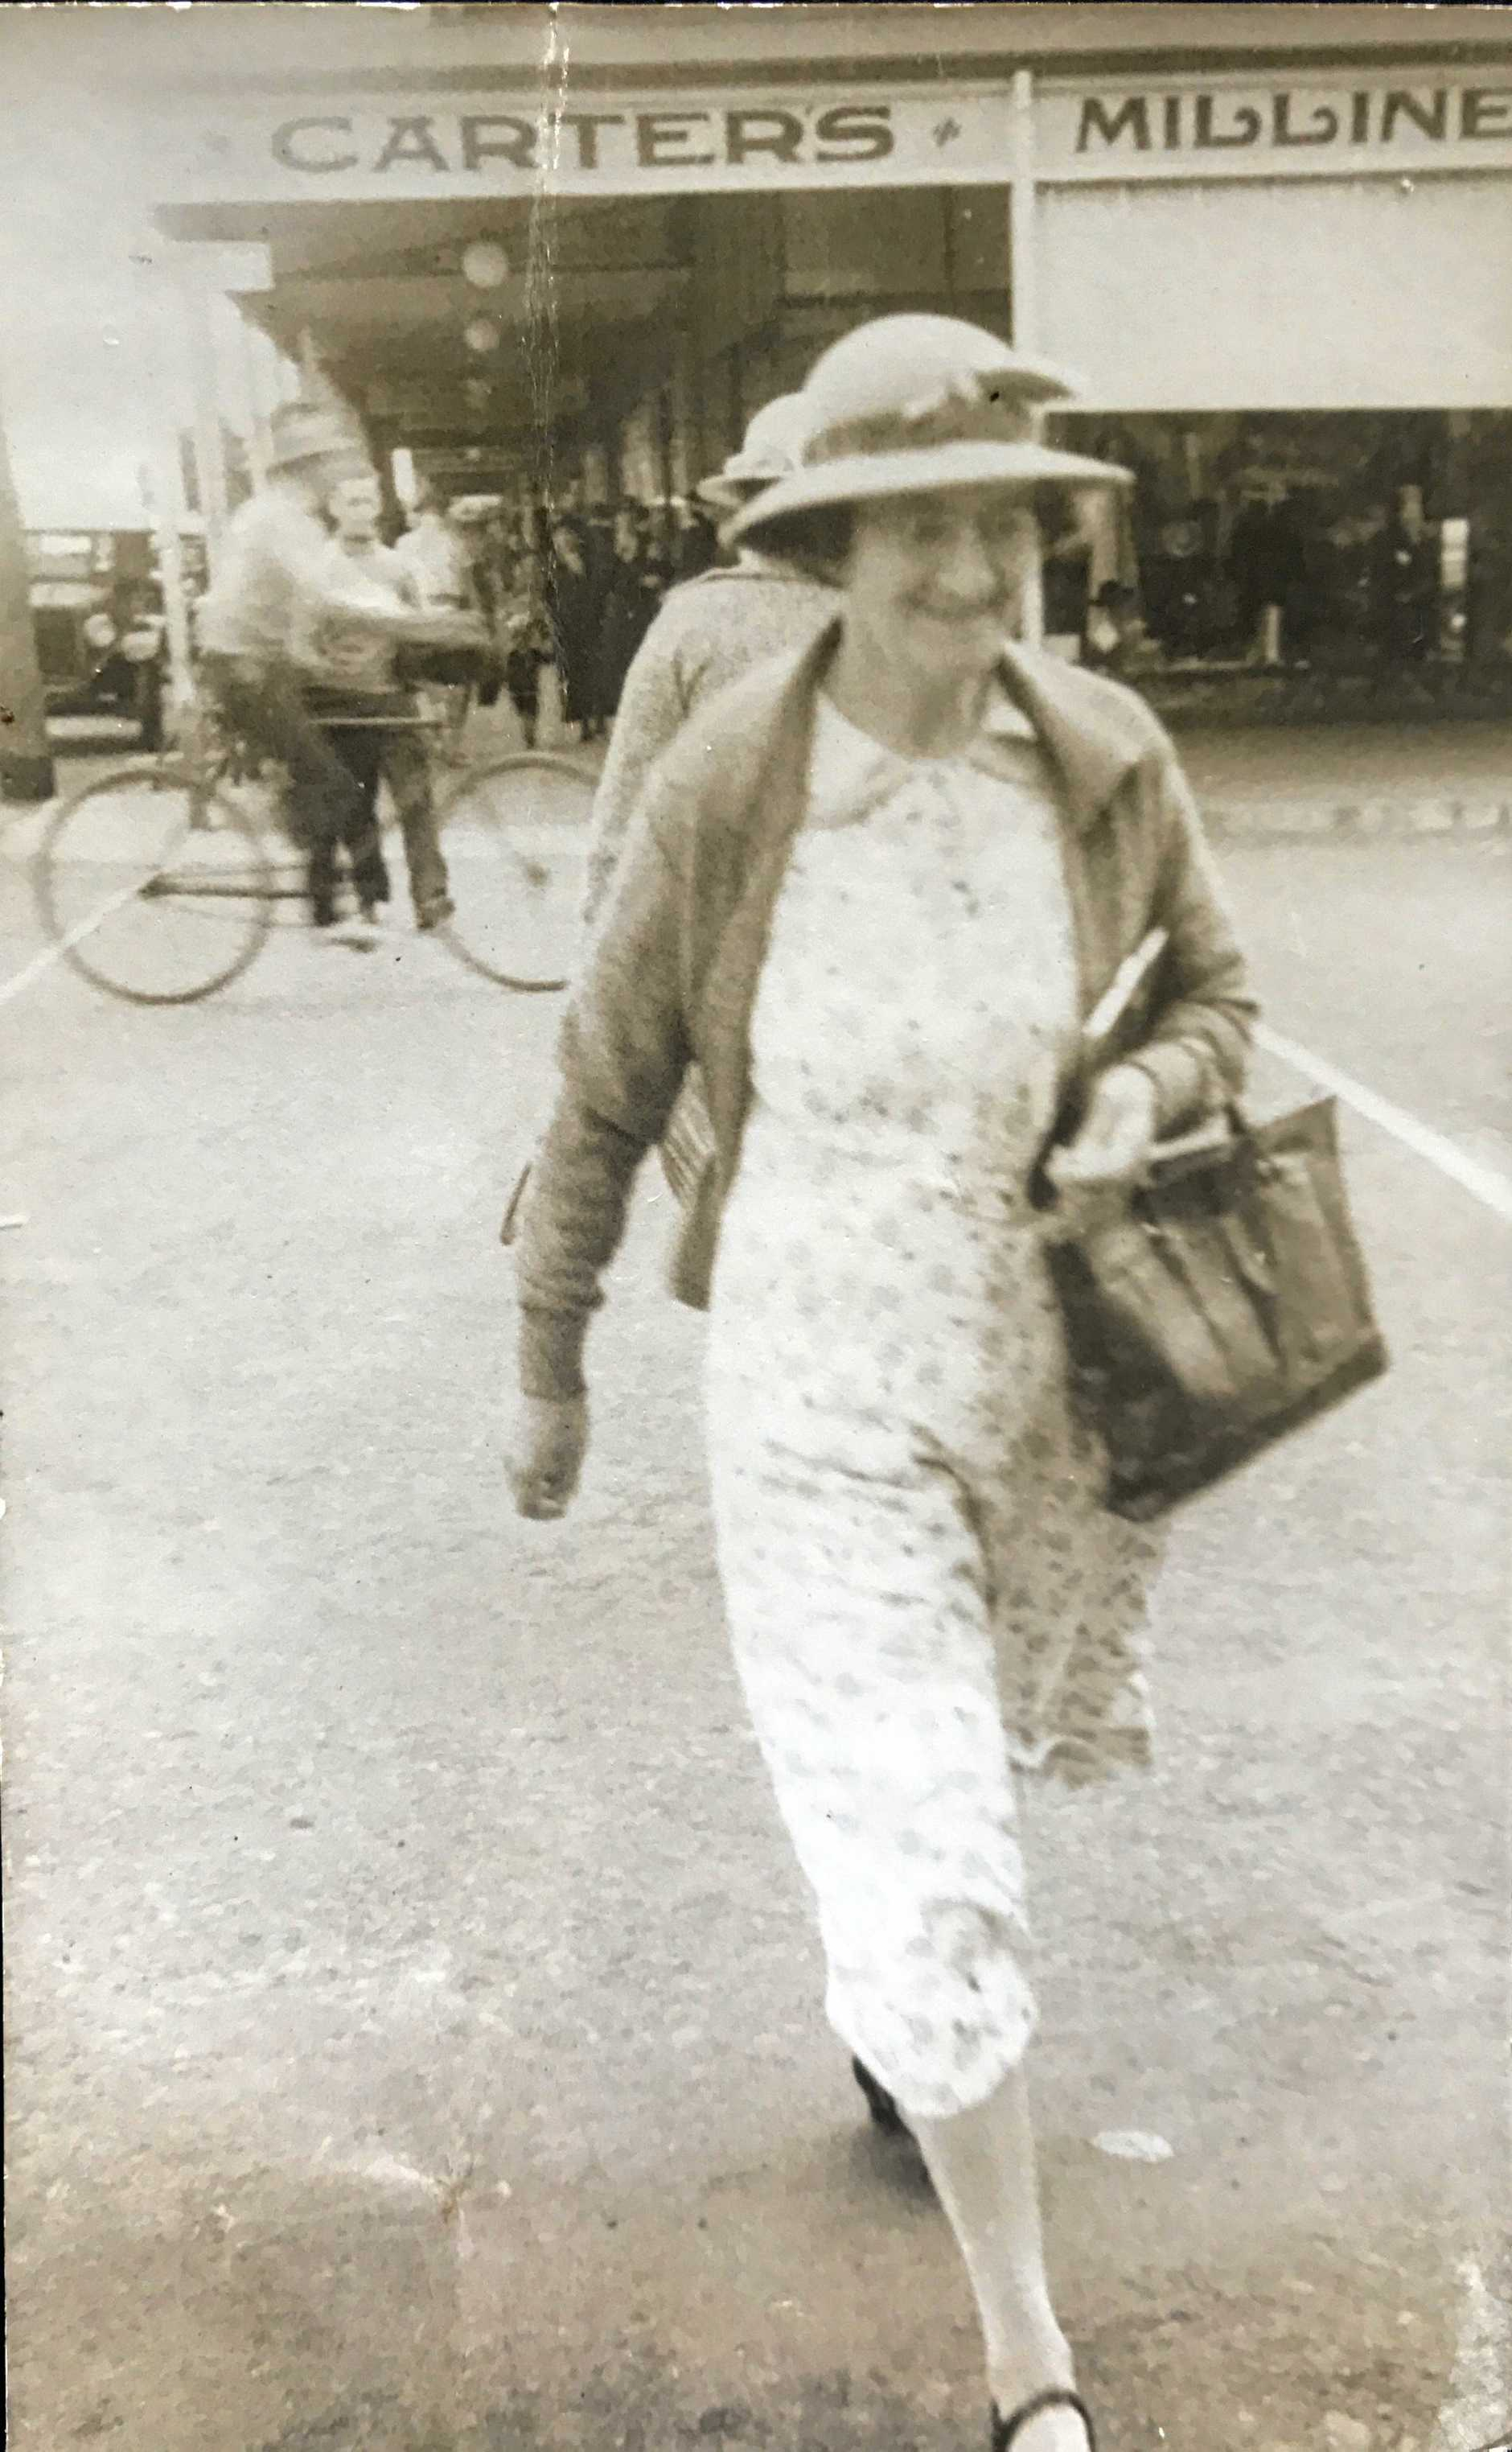 Elsie Johnson does some shopping in the Bundaberg CBD. Behind her is the Carter's store on the corner of Targo and Bourbong Sts.